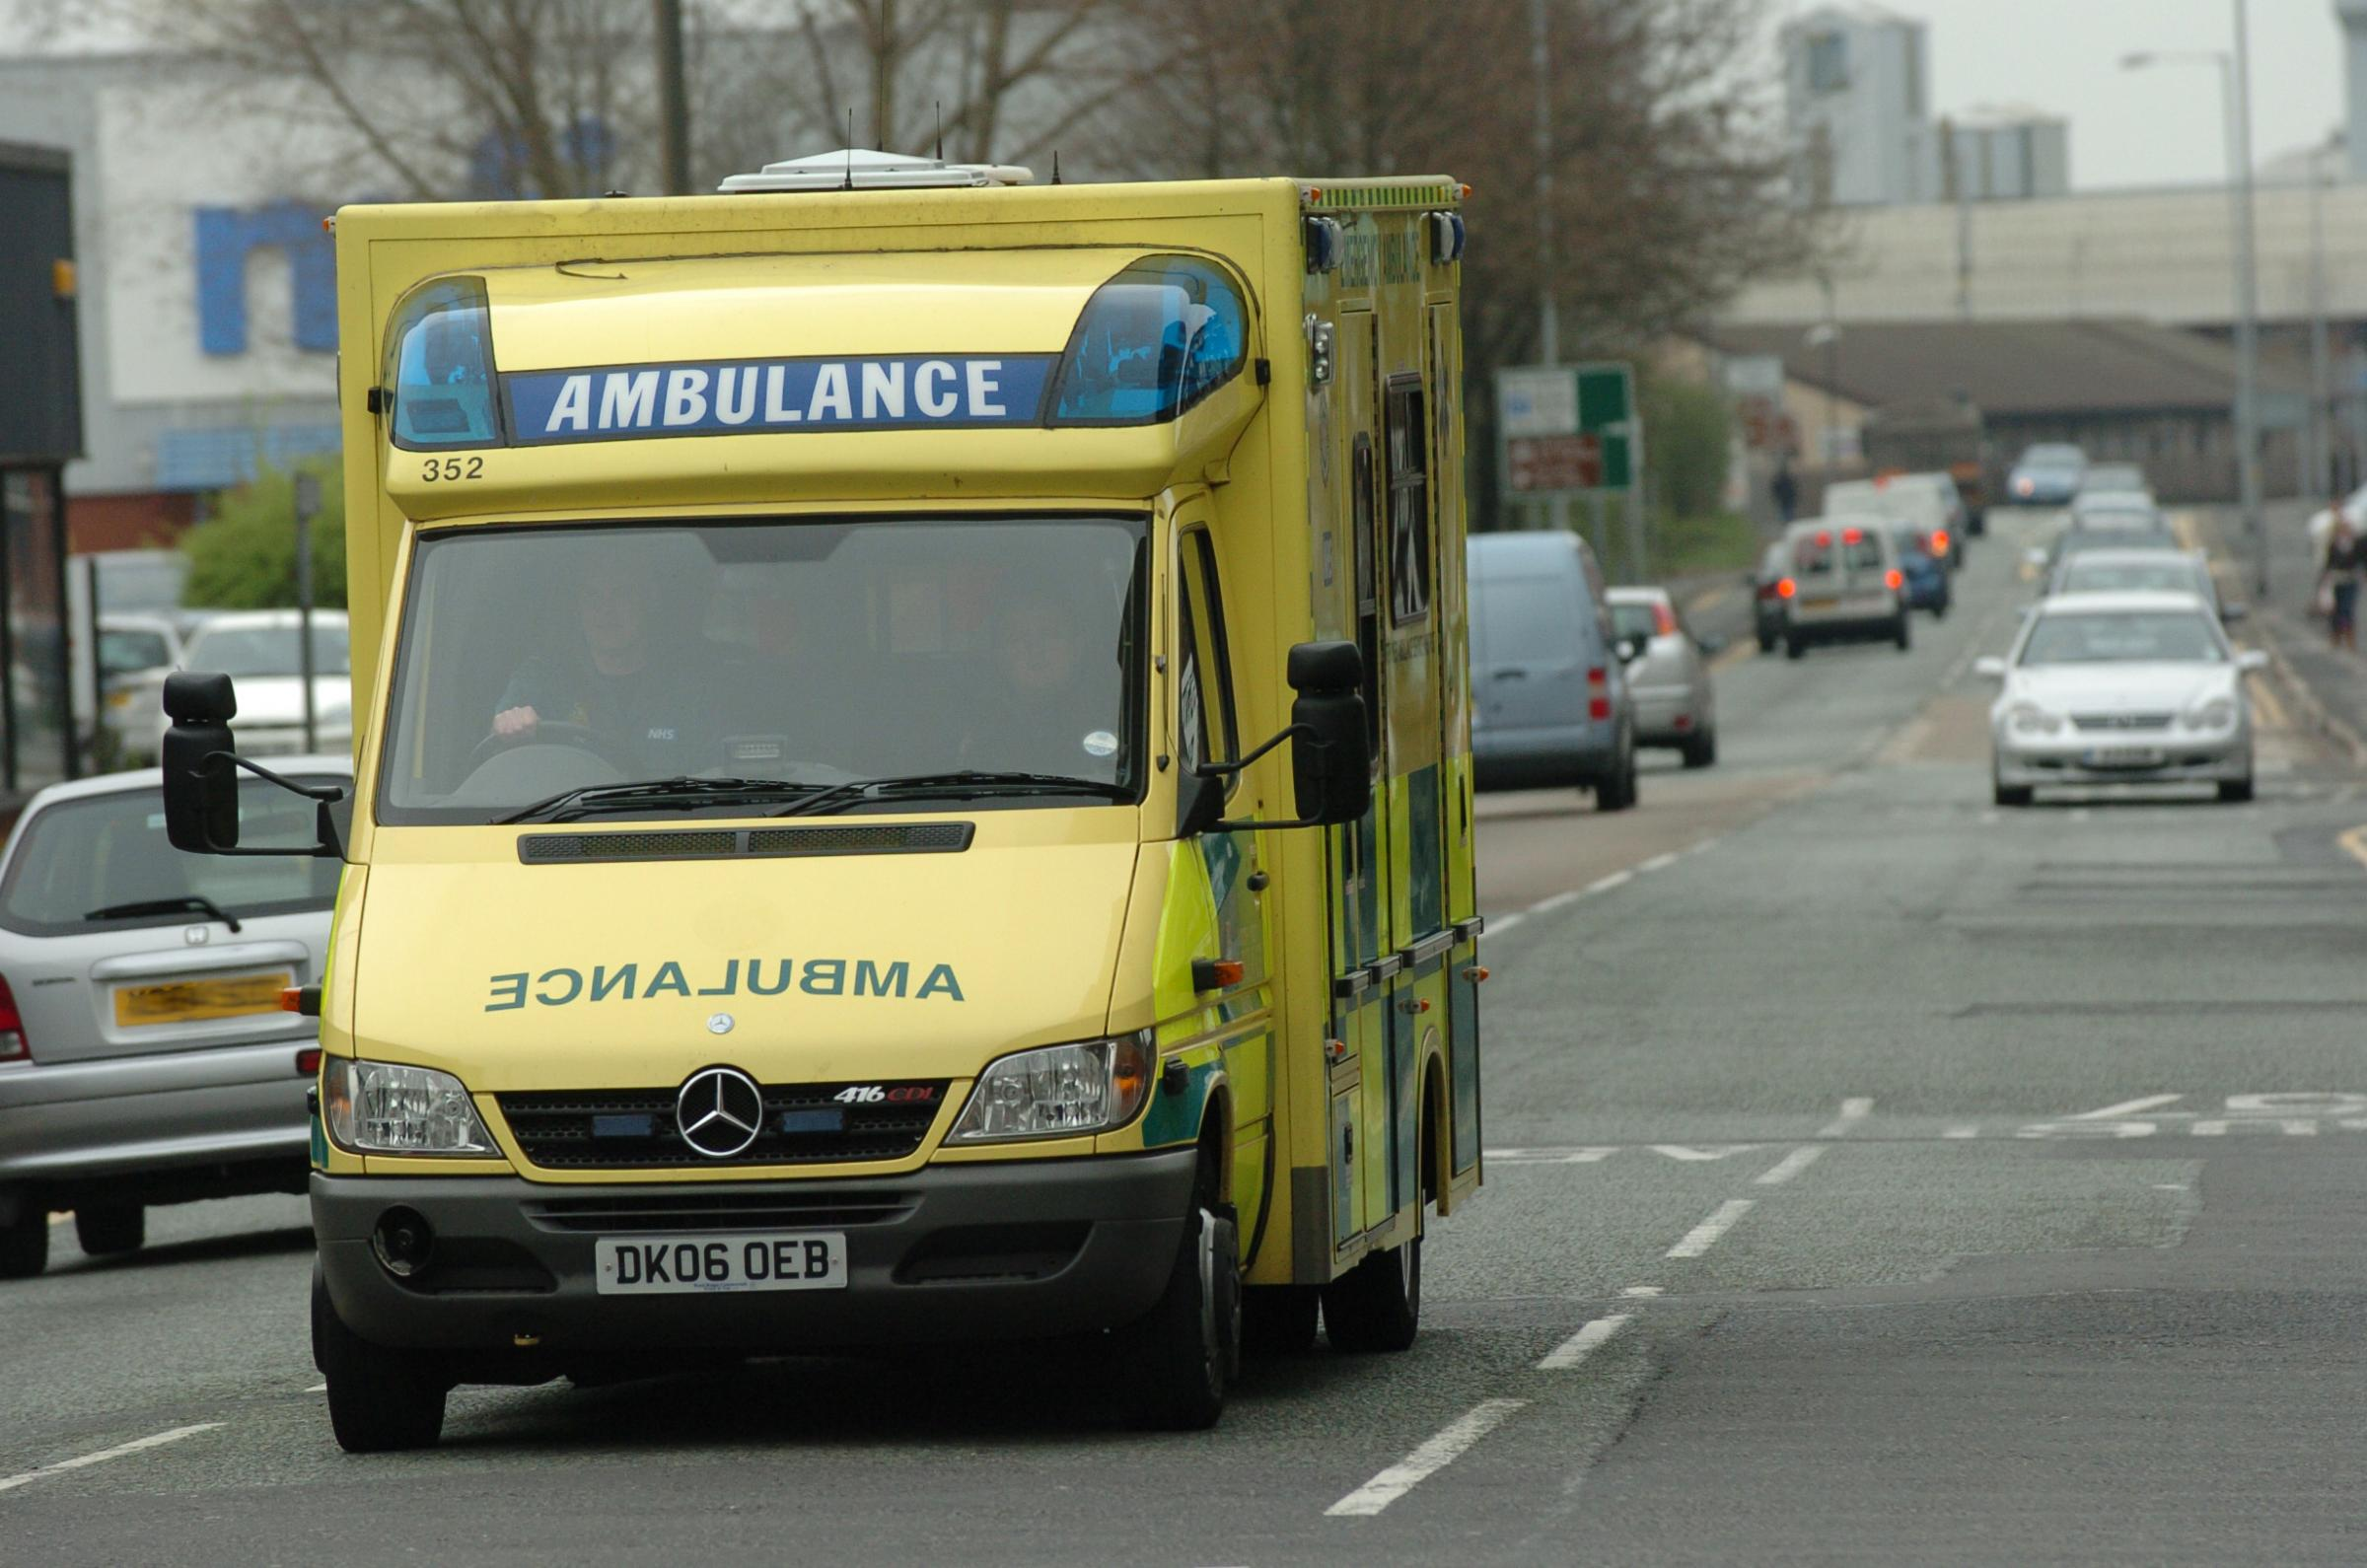 Paramedics may walk out on strike in row over pay